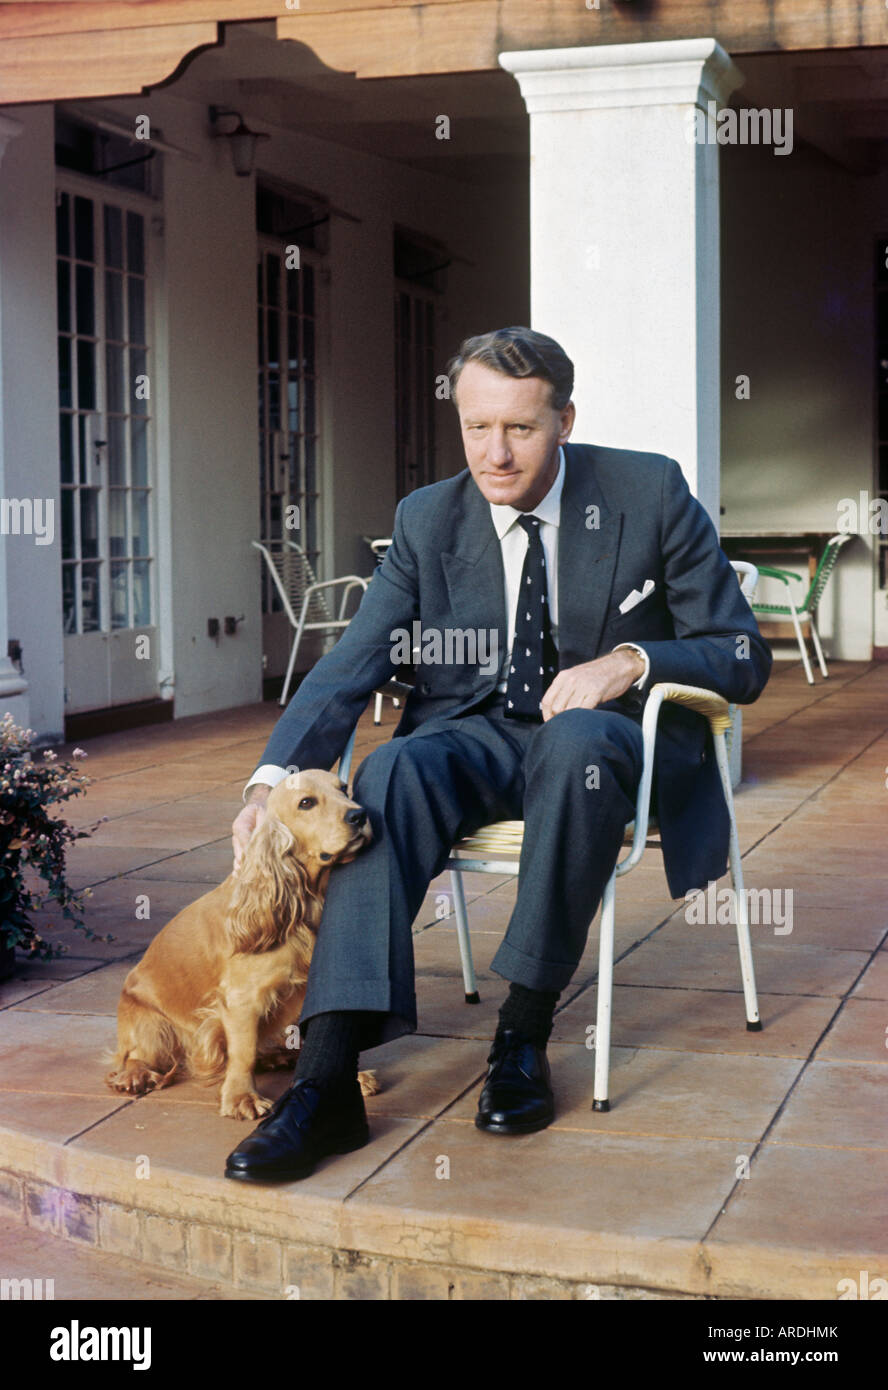 Ian Smith, Rhodesia prime minister, at home with pet spaniel; in 1965 he declared UDI, unilateral independence, - Stock Image